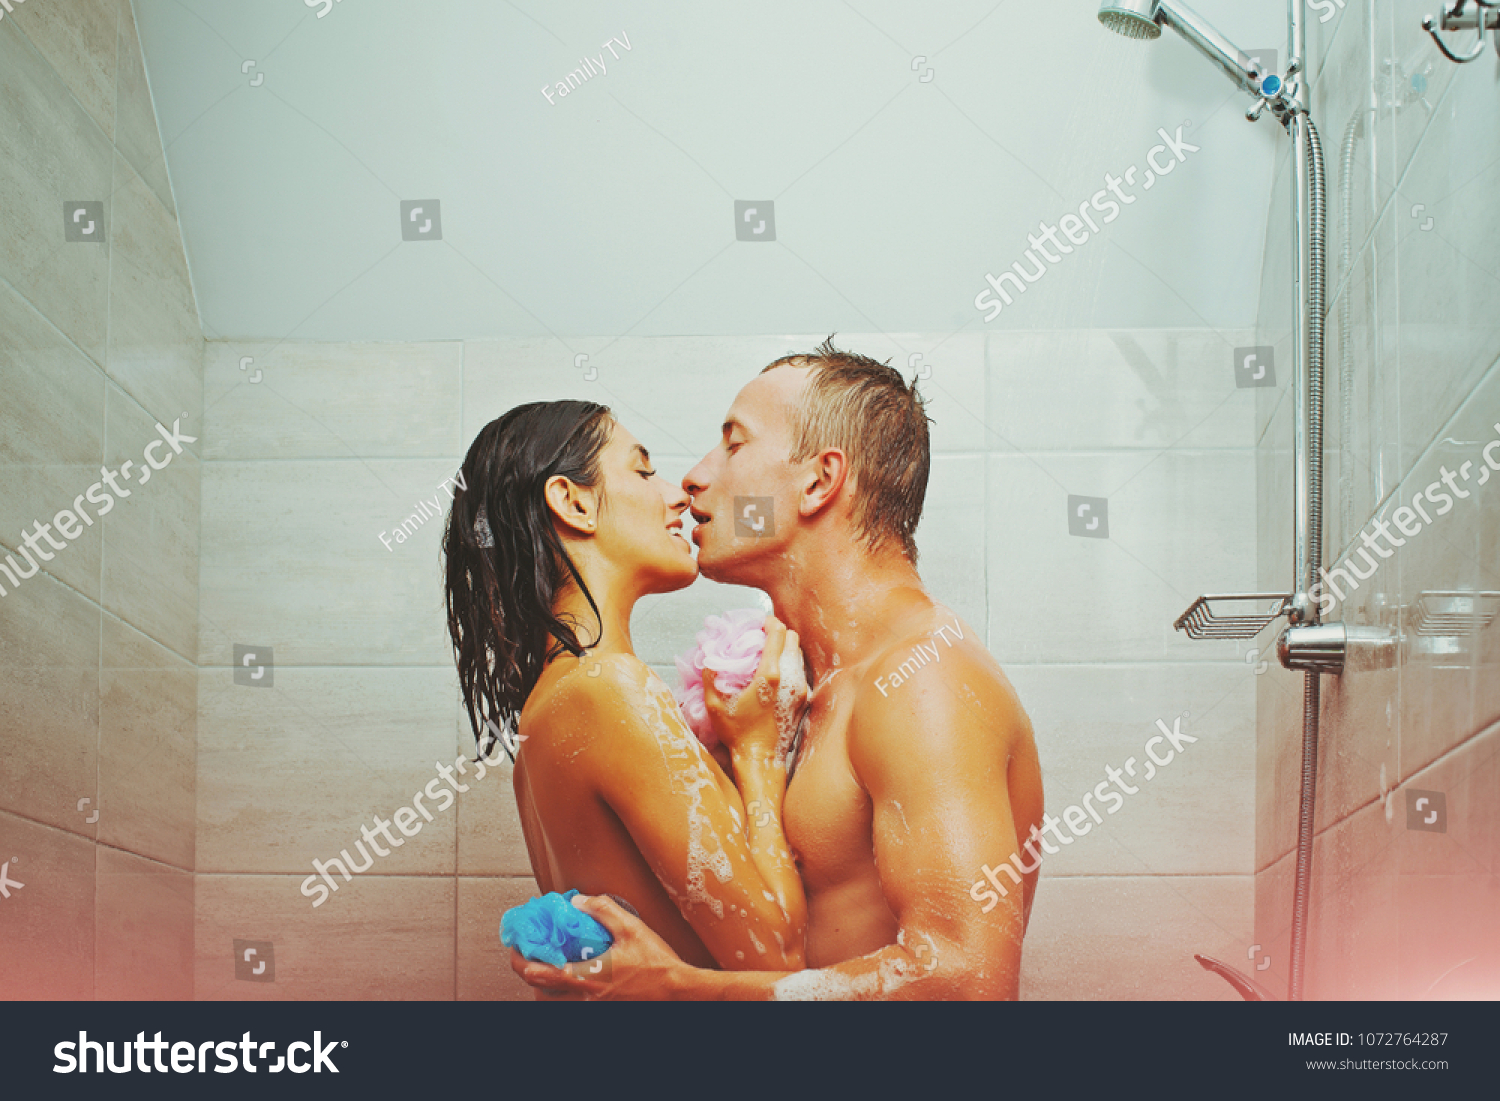 That can boy and girl having sex in the shower